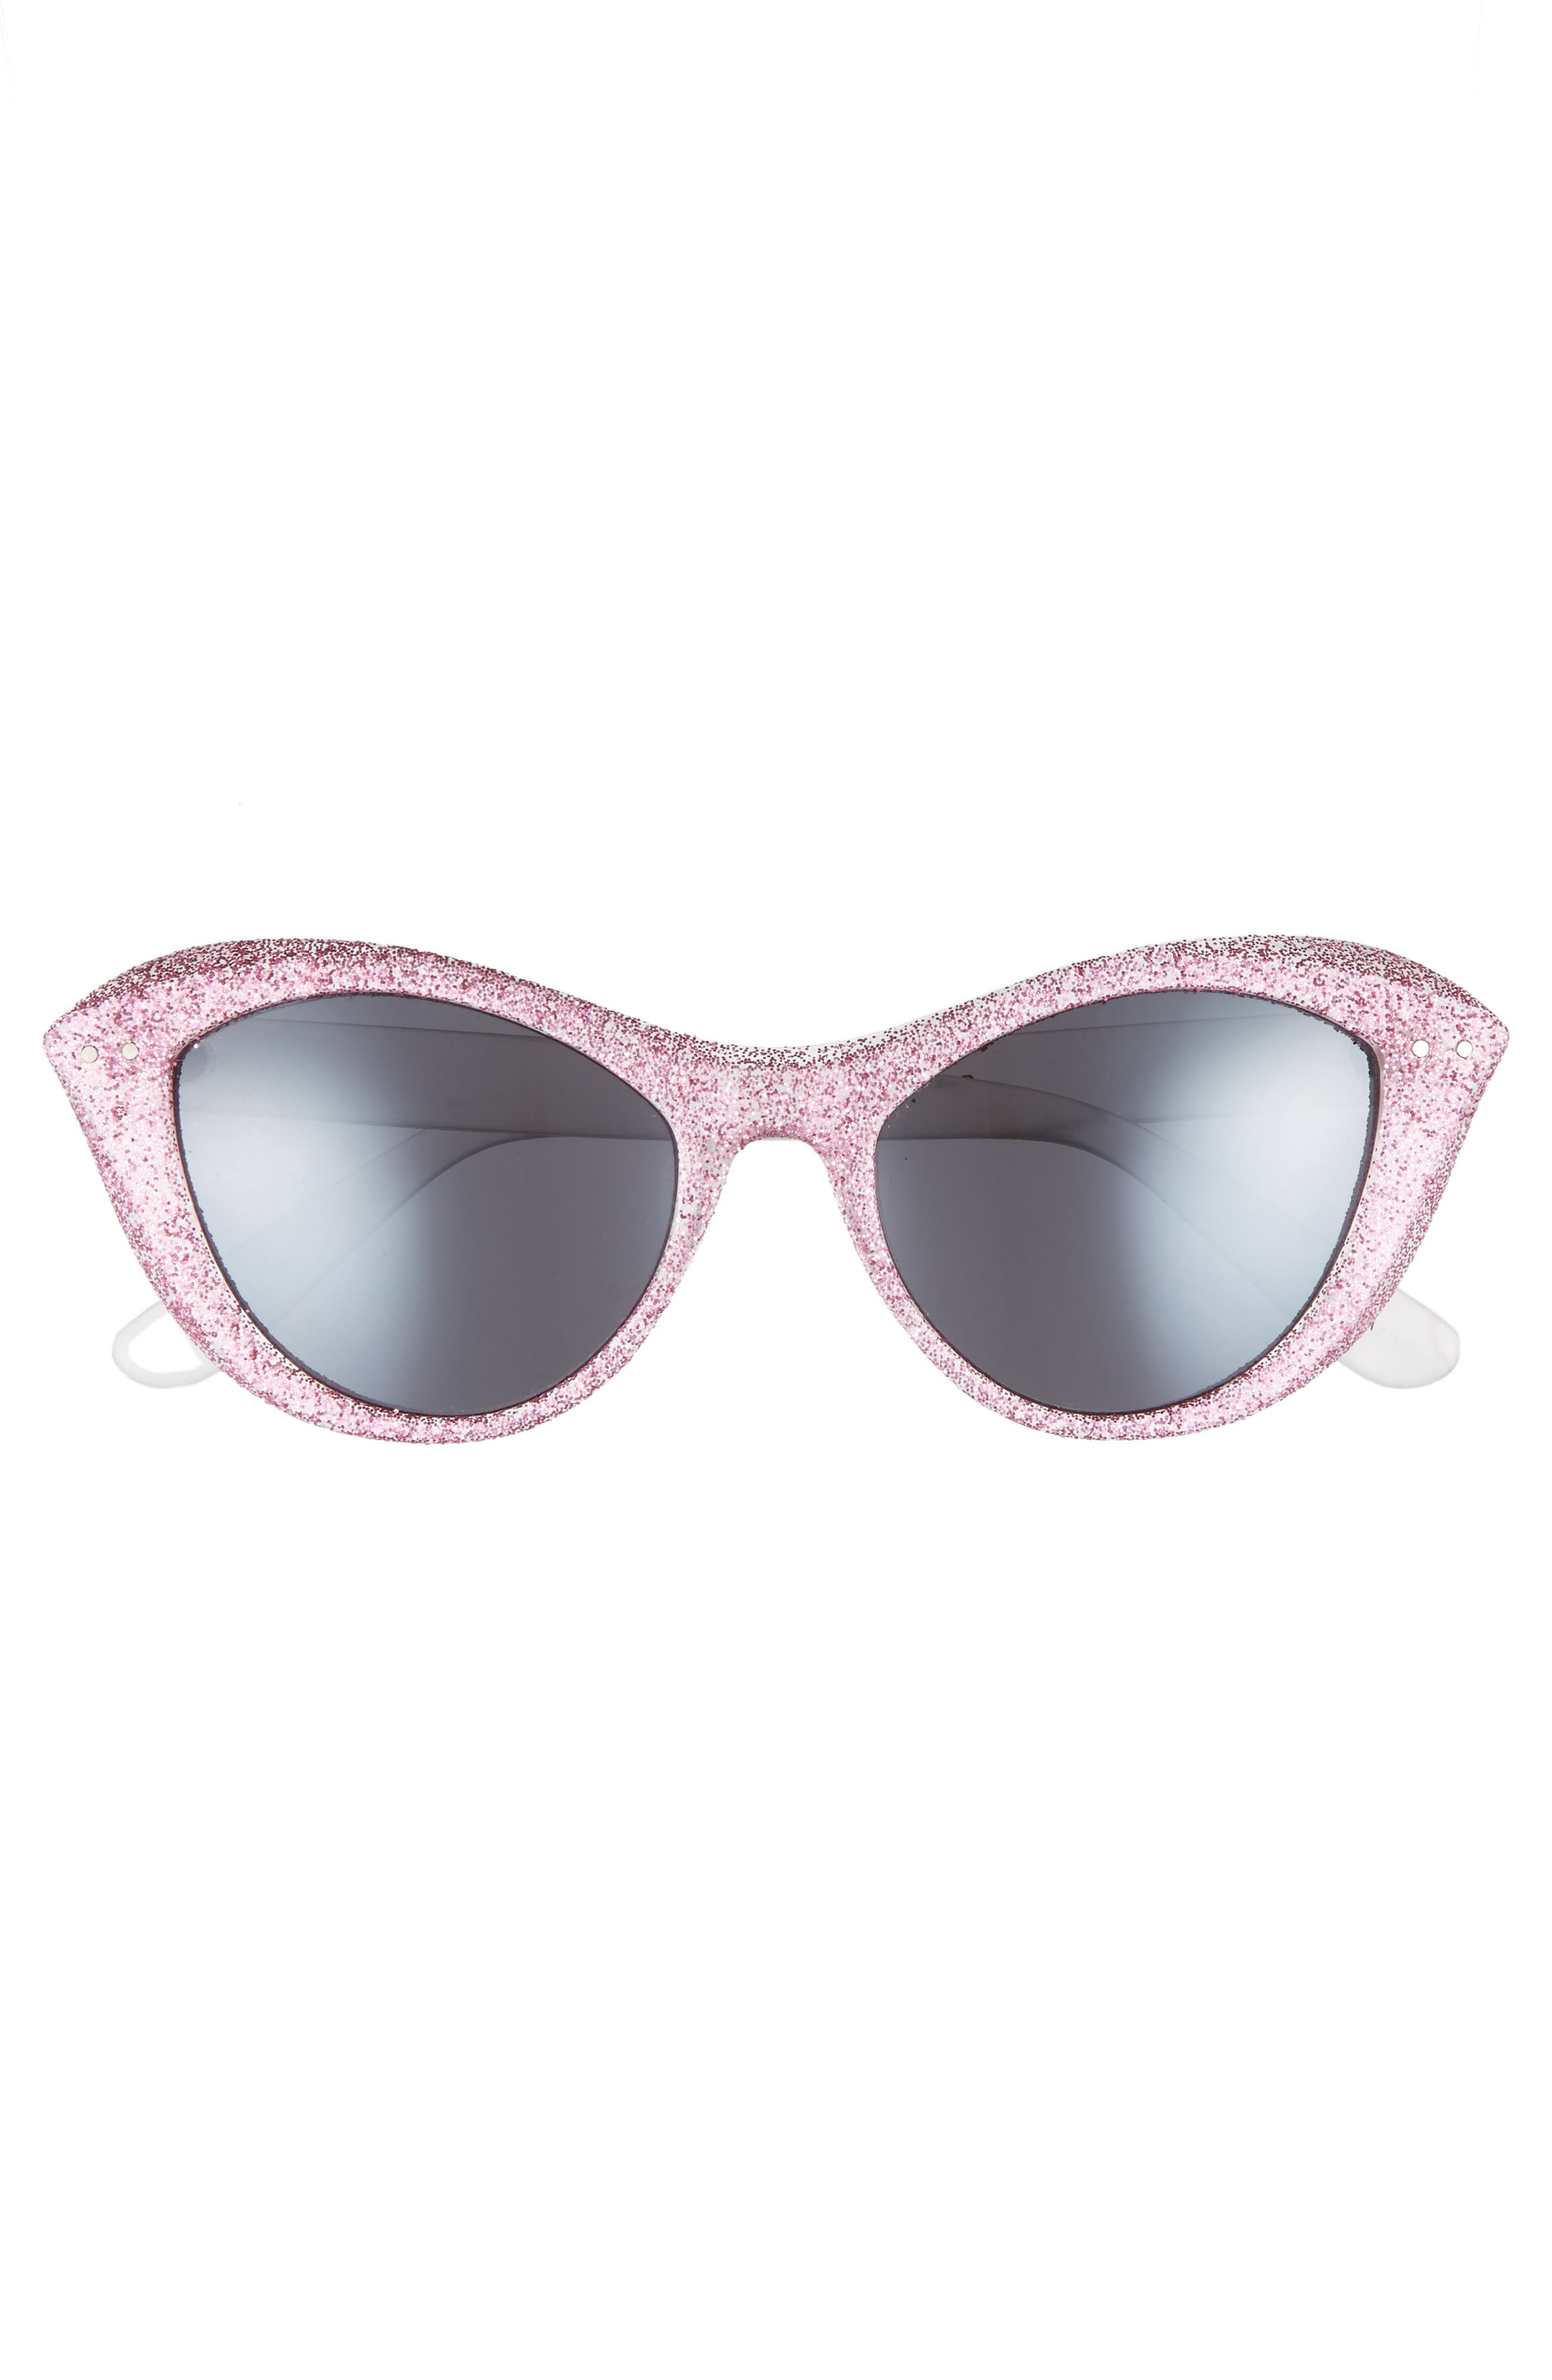 50mm Retro Cat Eye Sunglasses,                             Alternate thumbnail 3, color,                             100